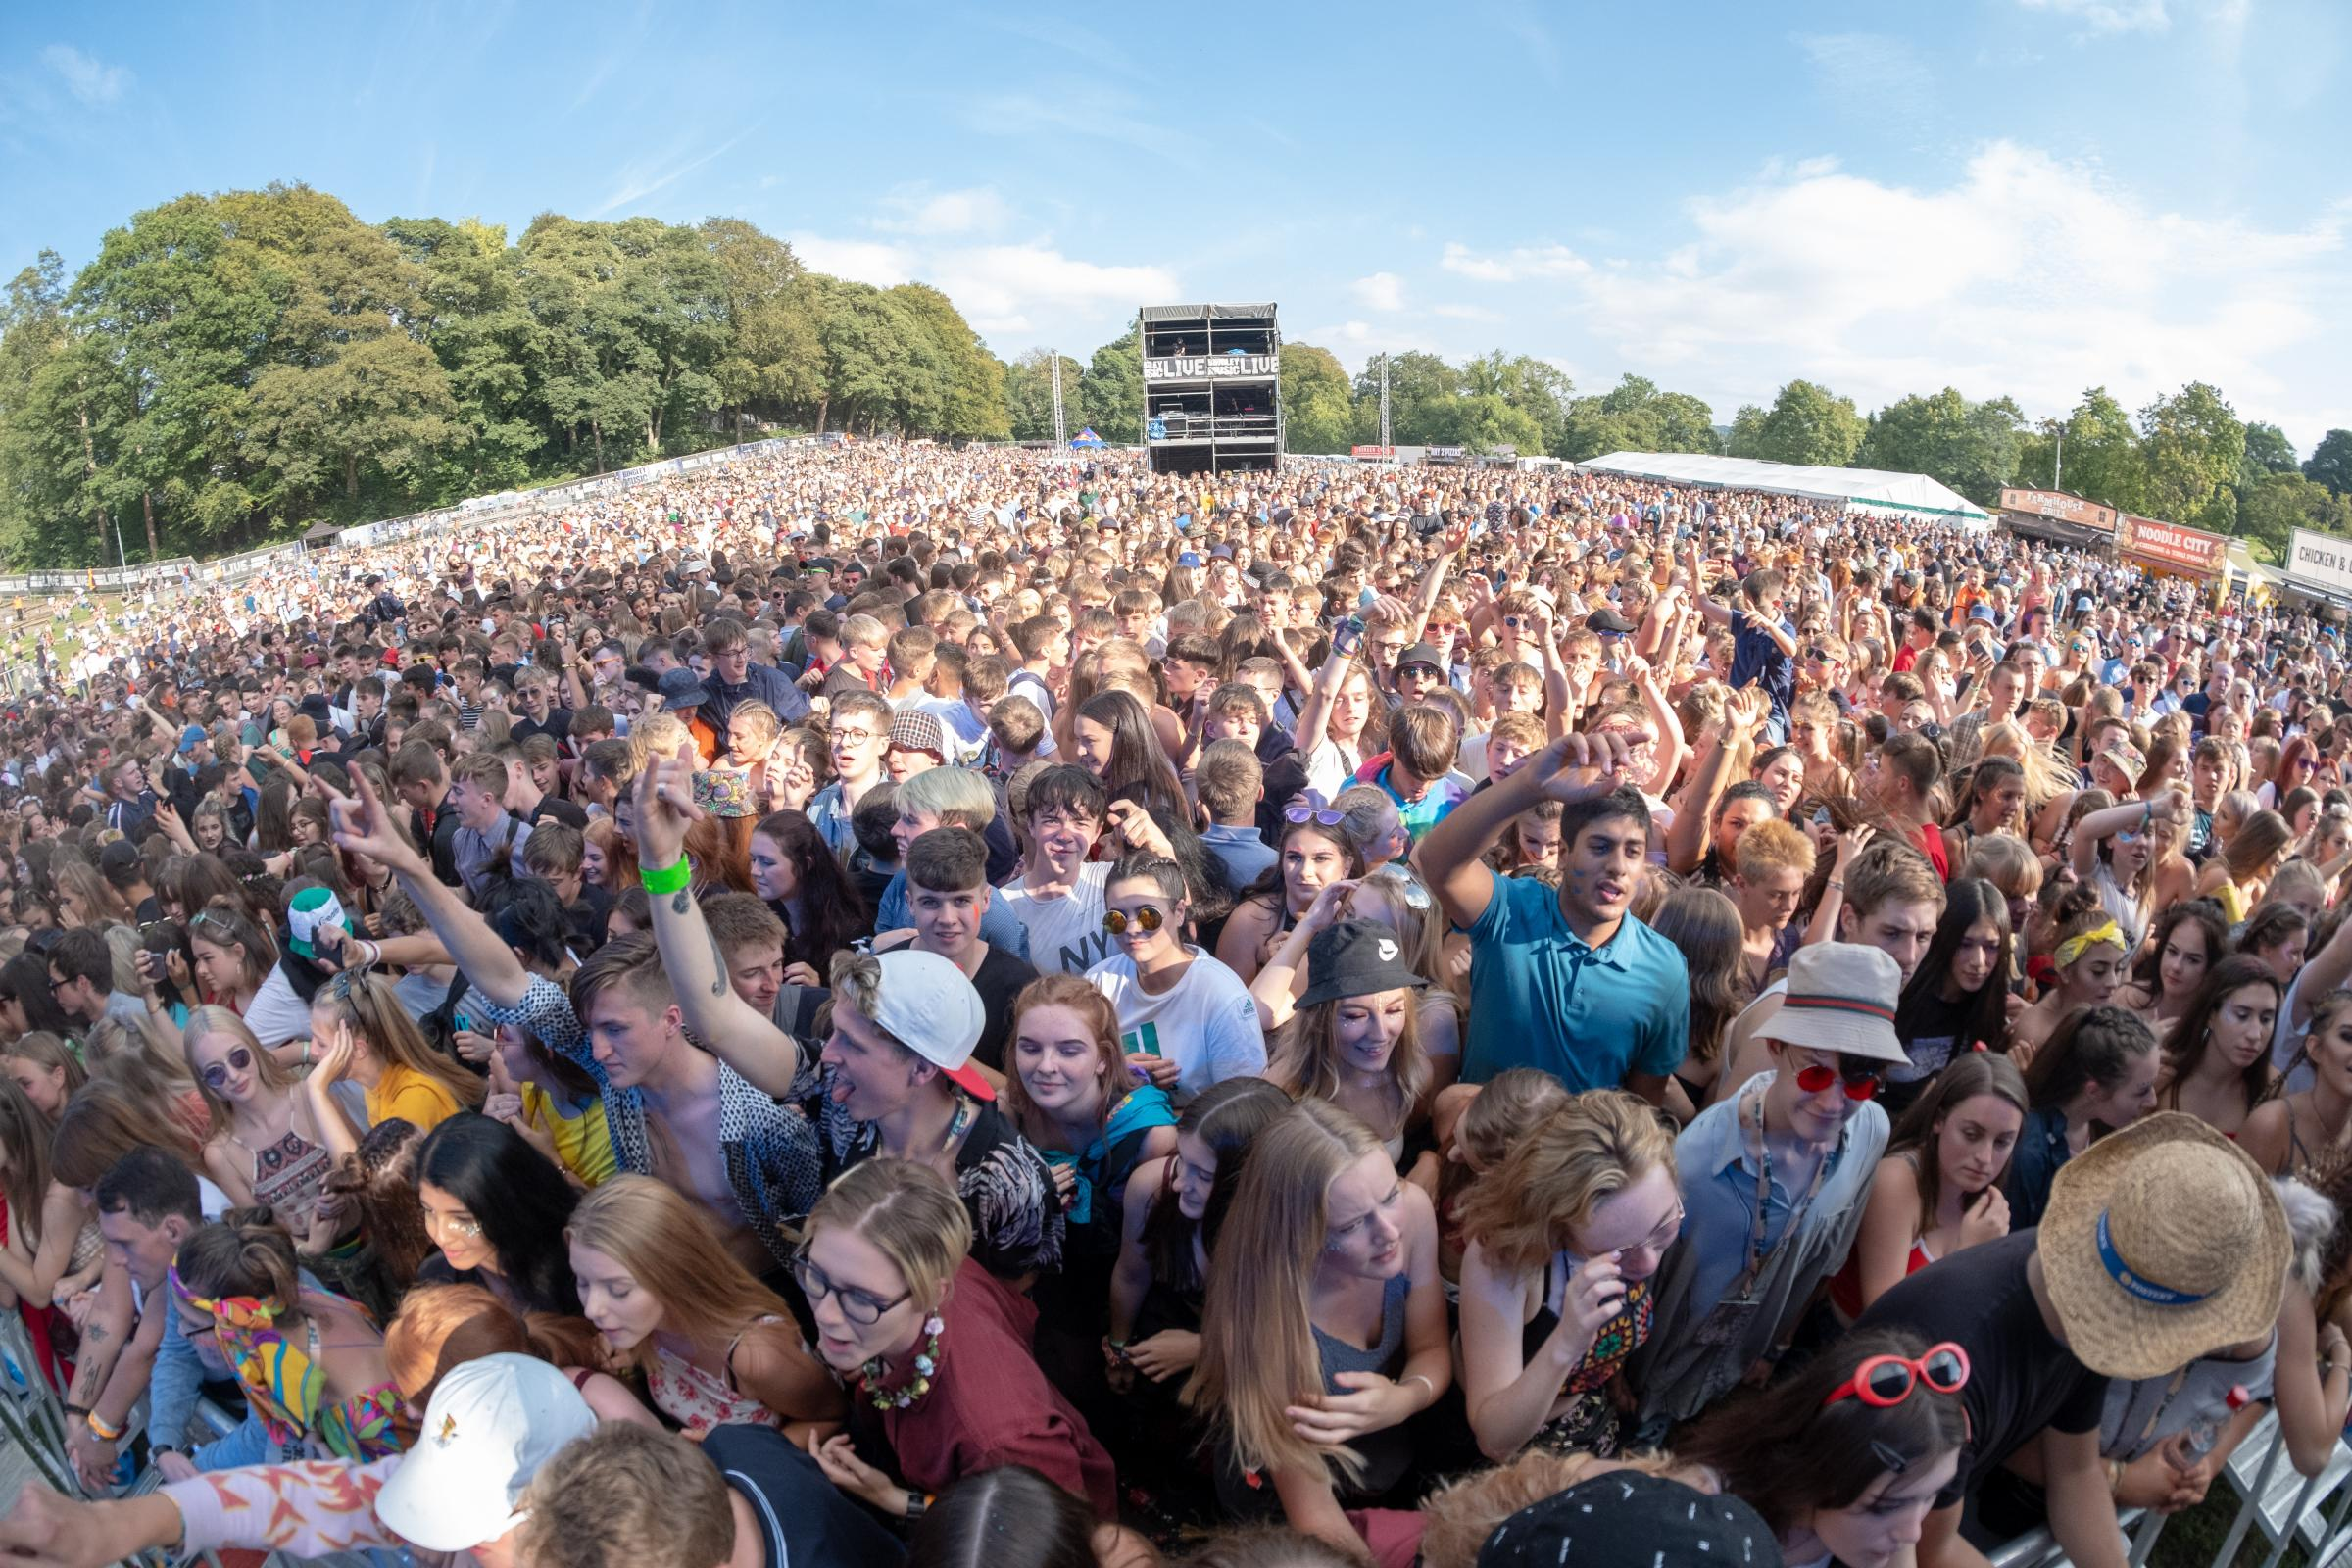 News on Bingley Music Live not expected until after Easter weekend